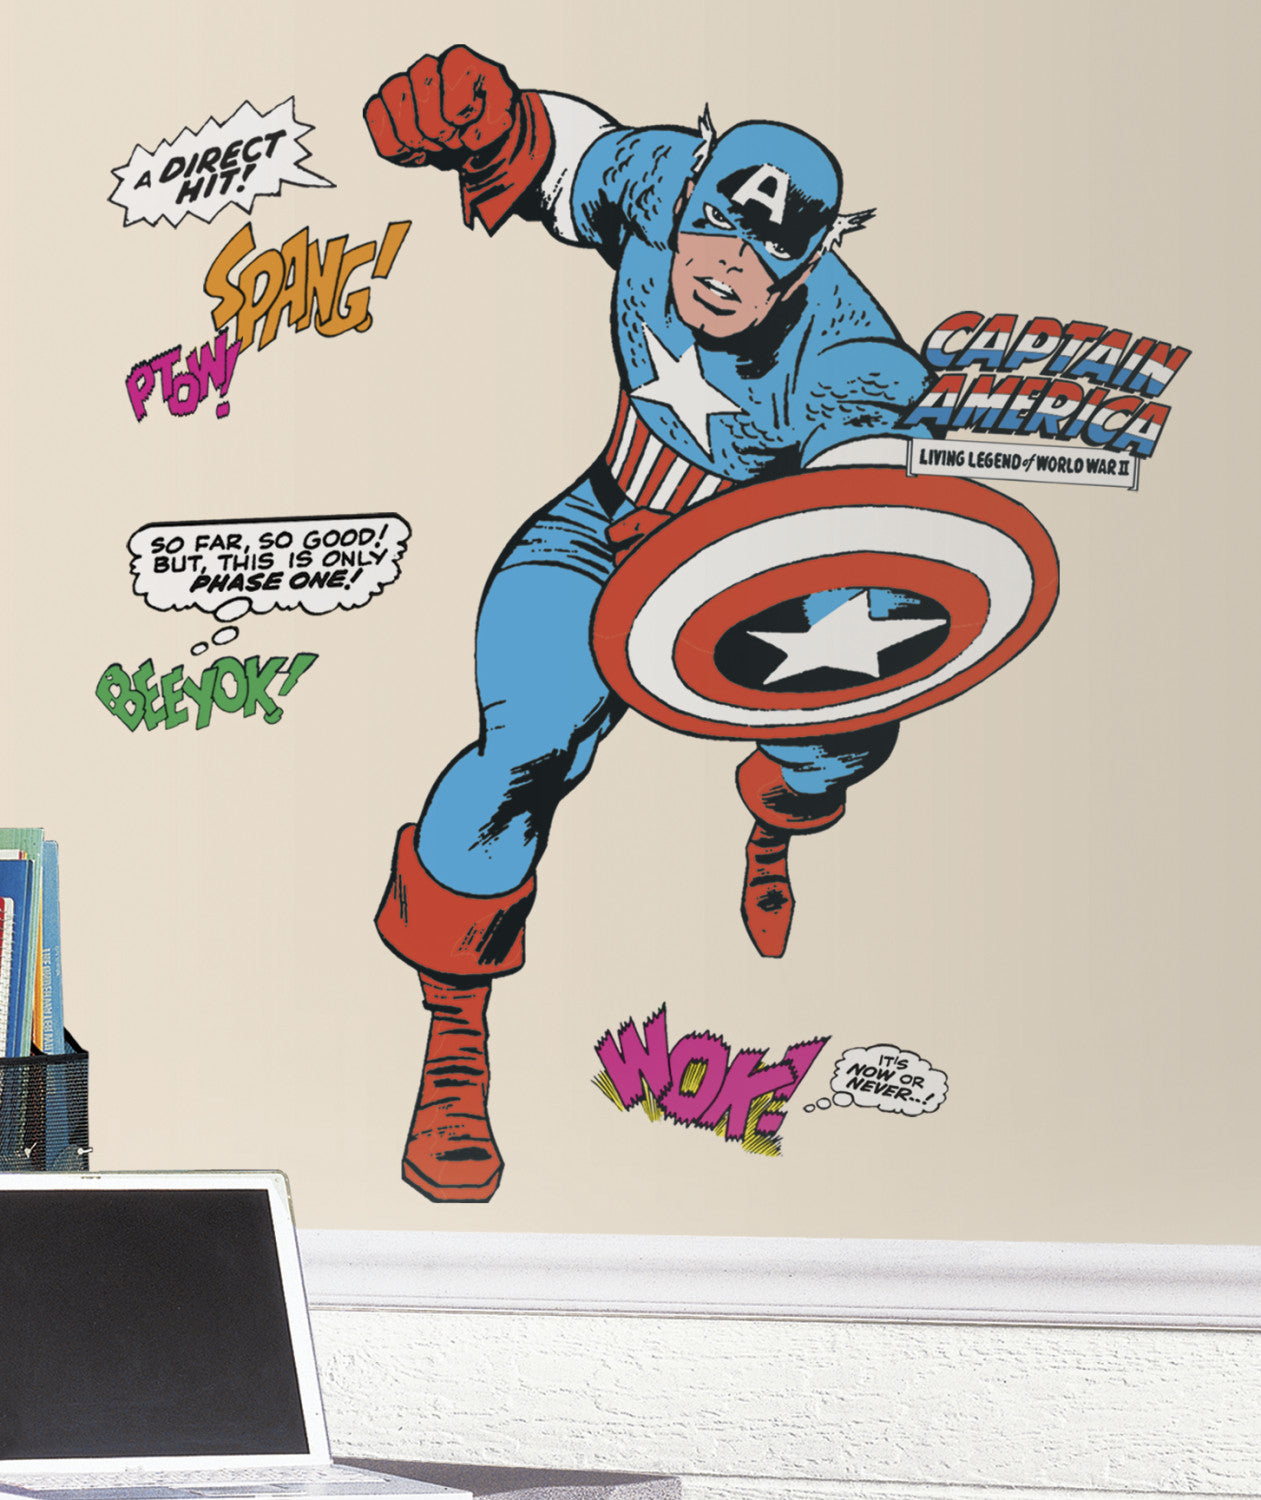 Marvel classic captain america peel and stick giant wall decals marvel classic captain america peel and stick giant wall decals amipublicfo Image collections